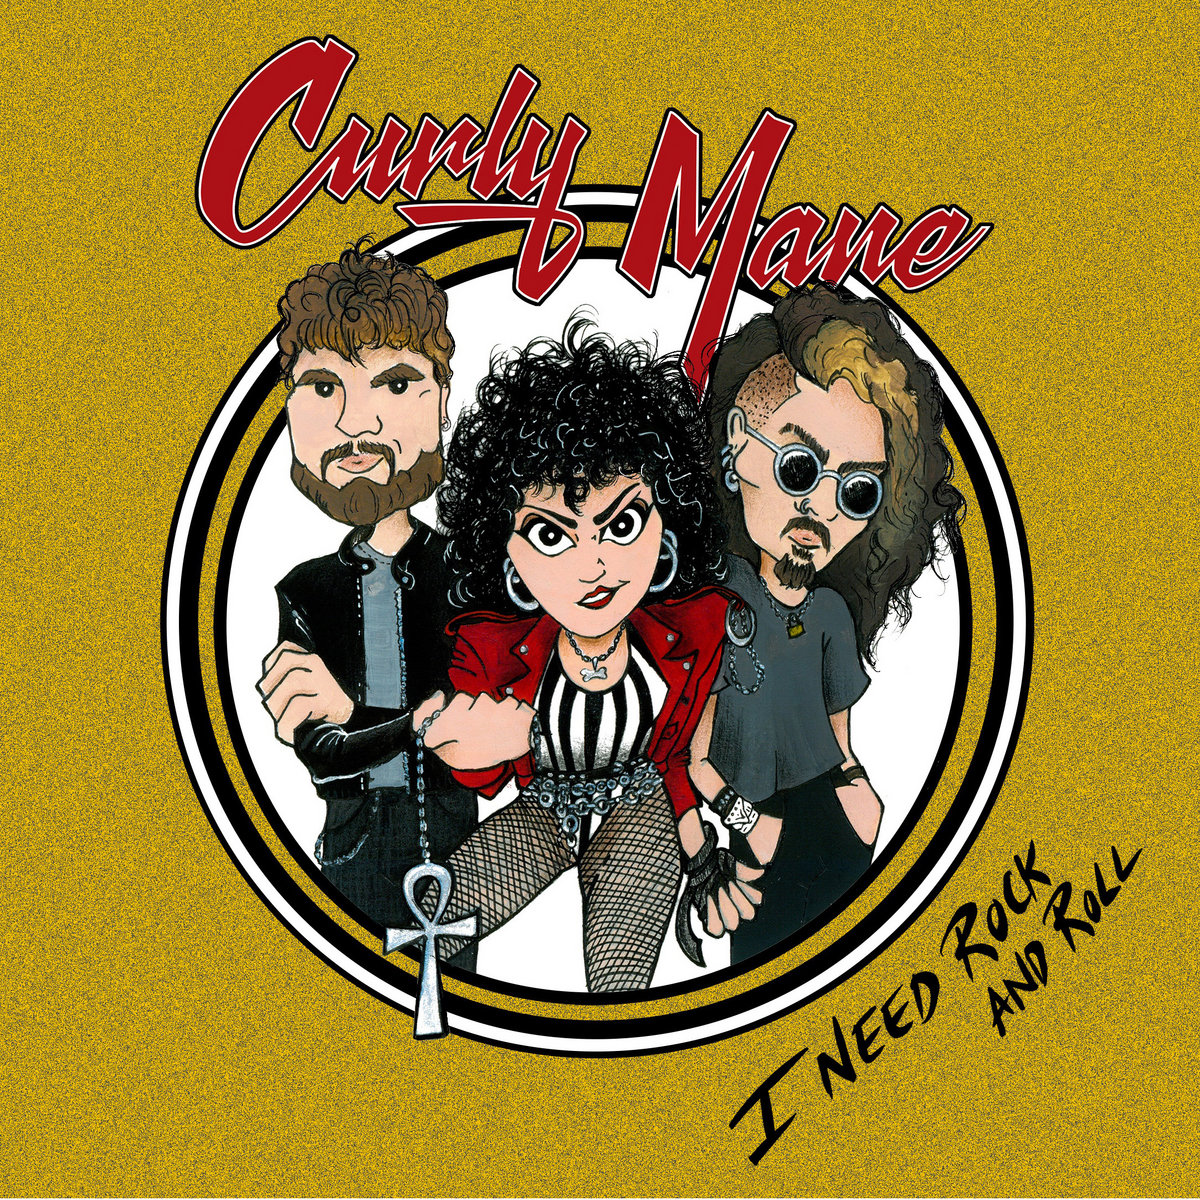 Reseña: CURLY MANE.- 'I need rock androll'